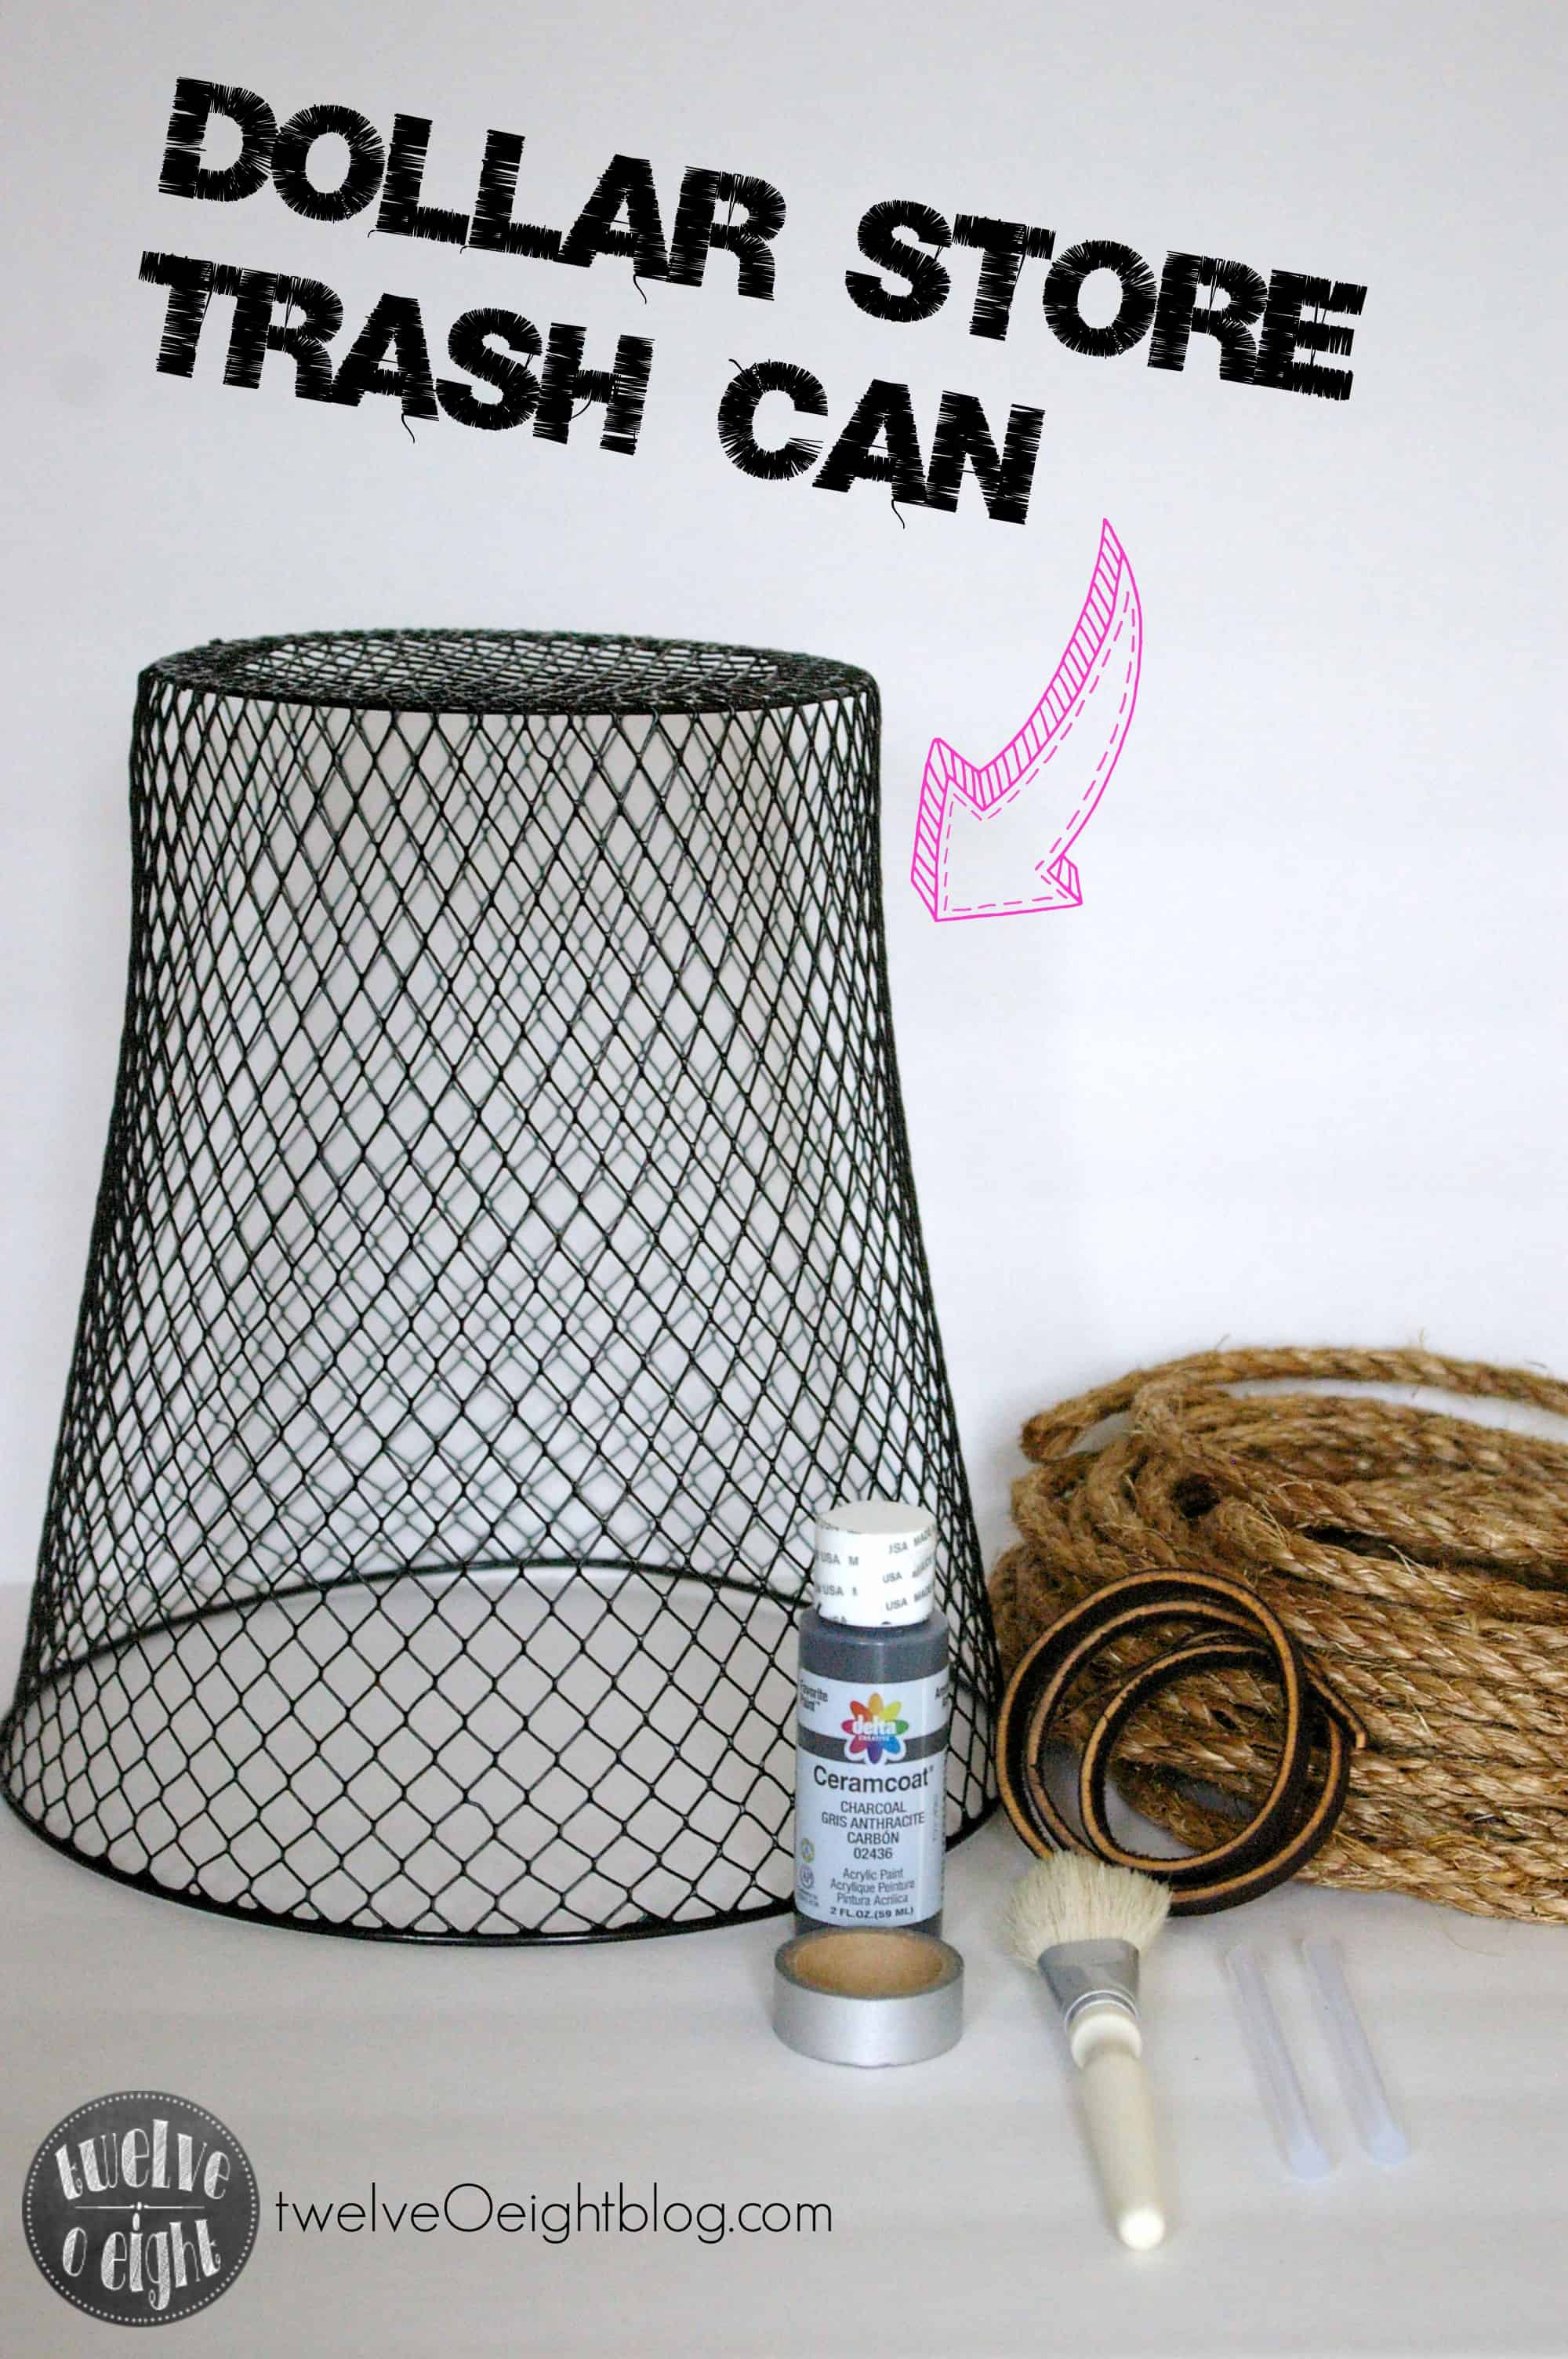 Rope basket from a dollar store trash can